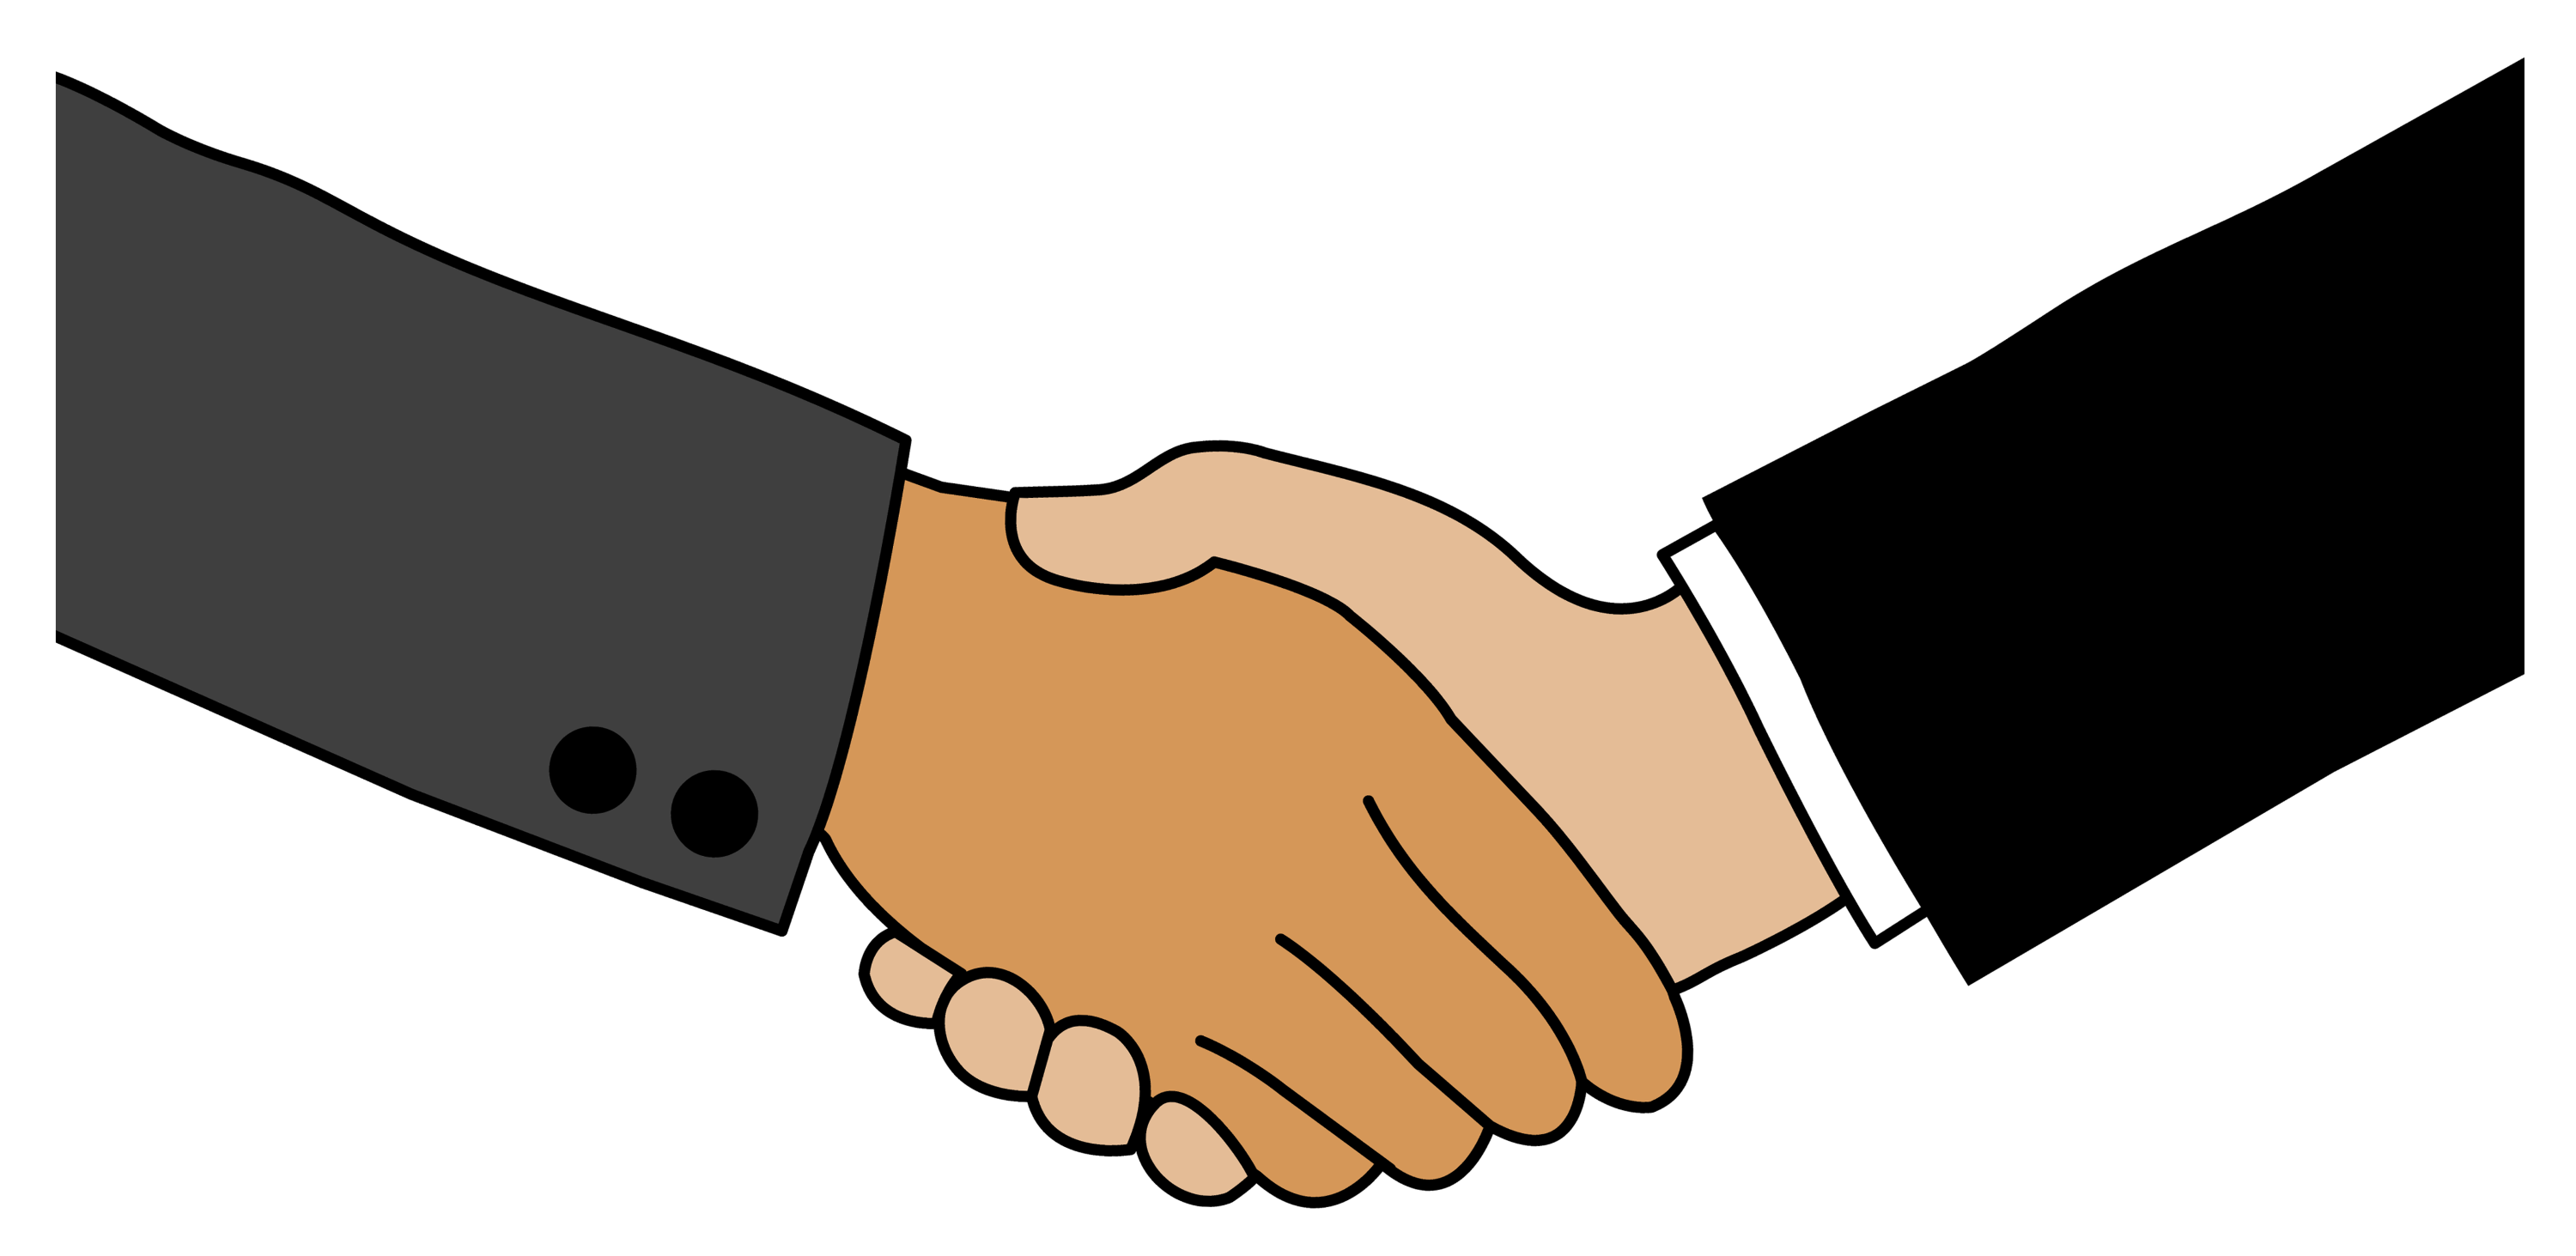 business handshake free clip art rh sweetclipart com clipart man and woman shaking hands clipart images of shaking hands